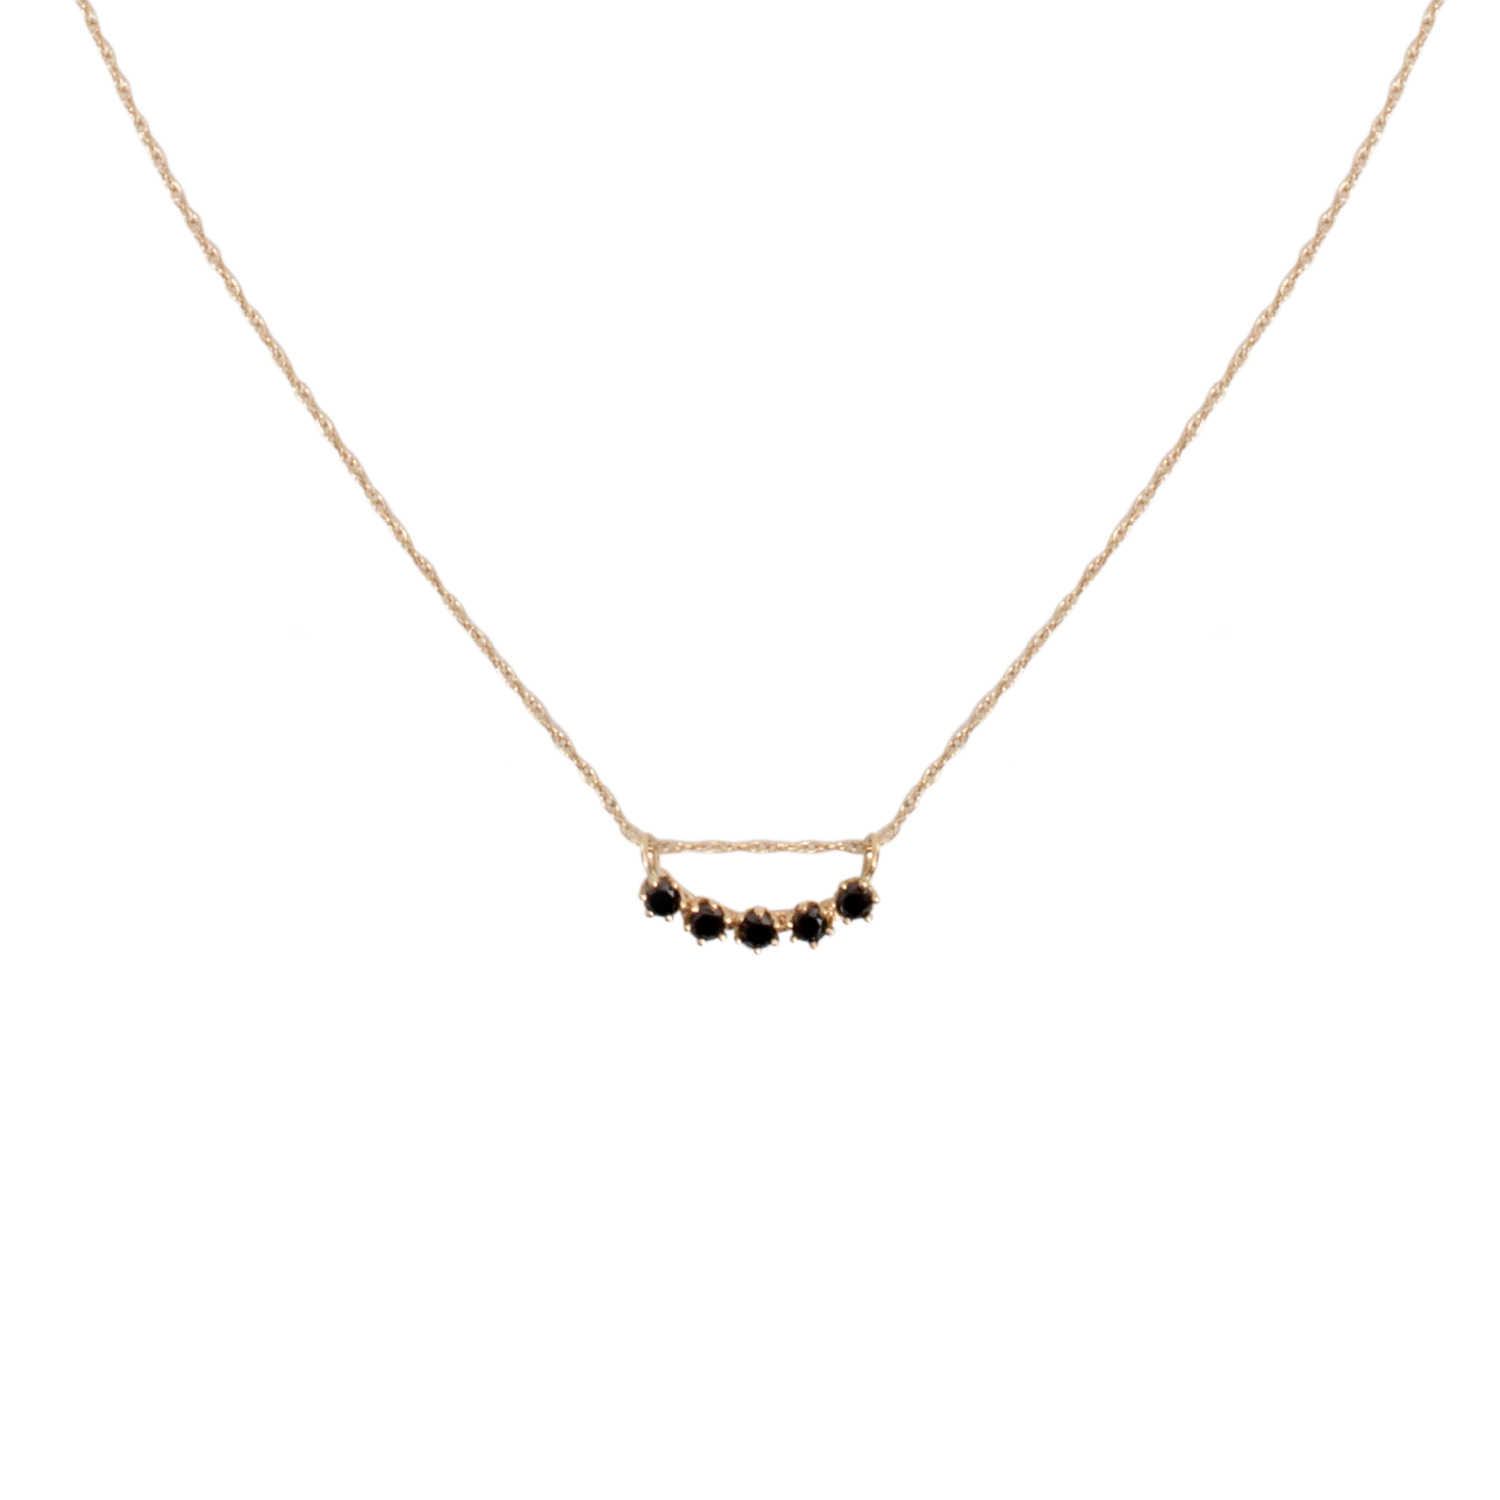 pendant necklaces swarovski shop s en black necklace online jewellery women accessories simons